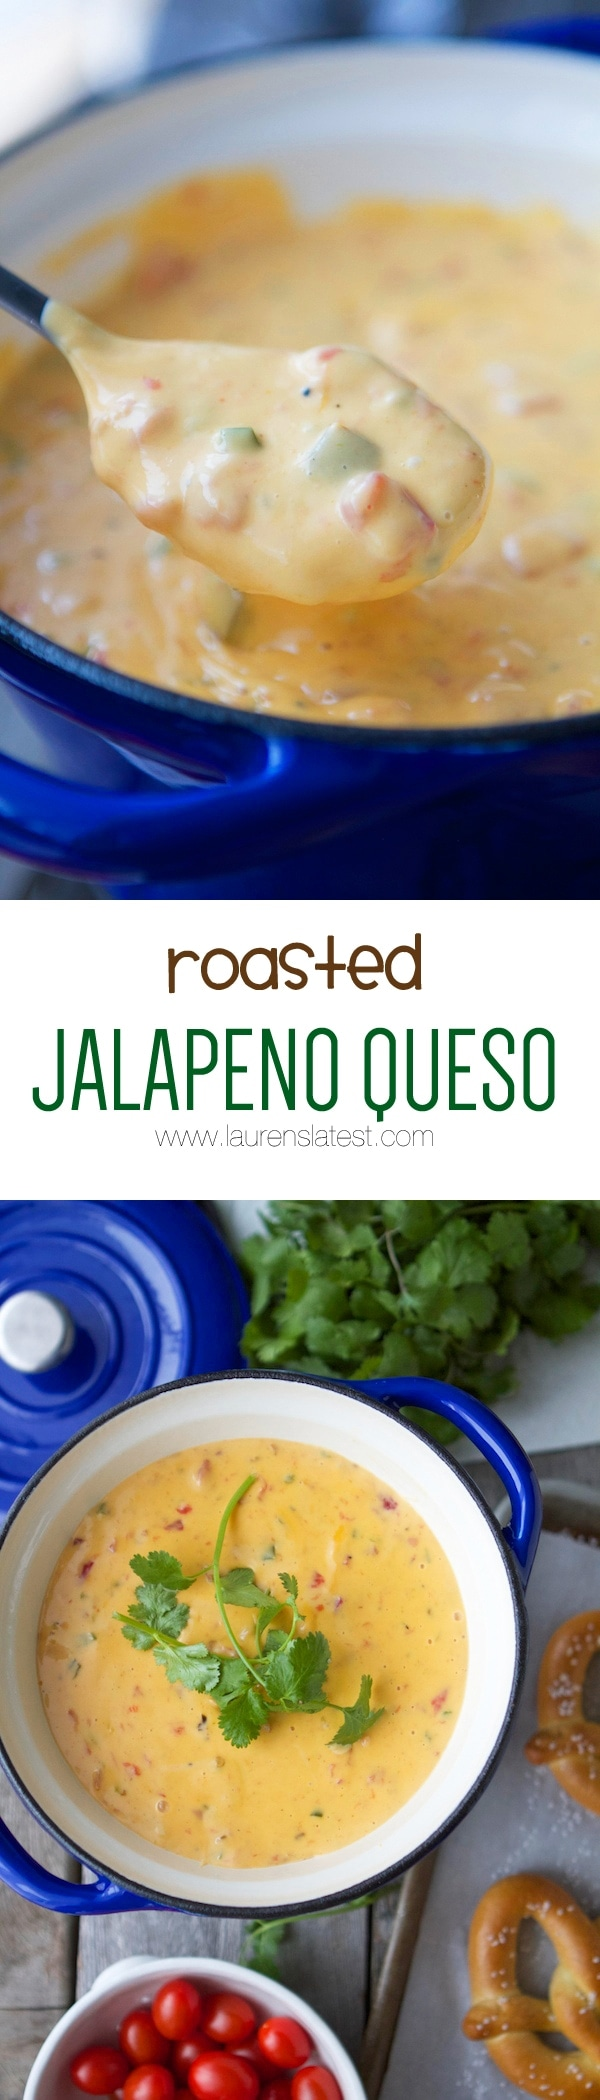 ROASTED JALAPENO QUESO